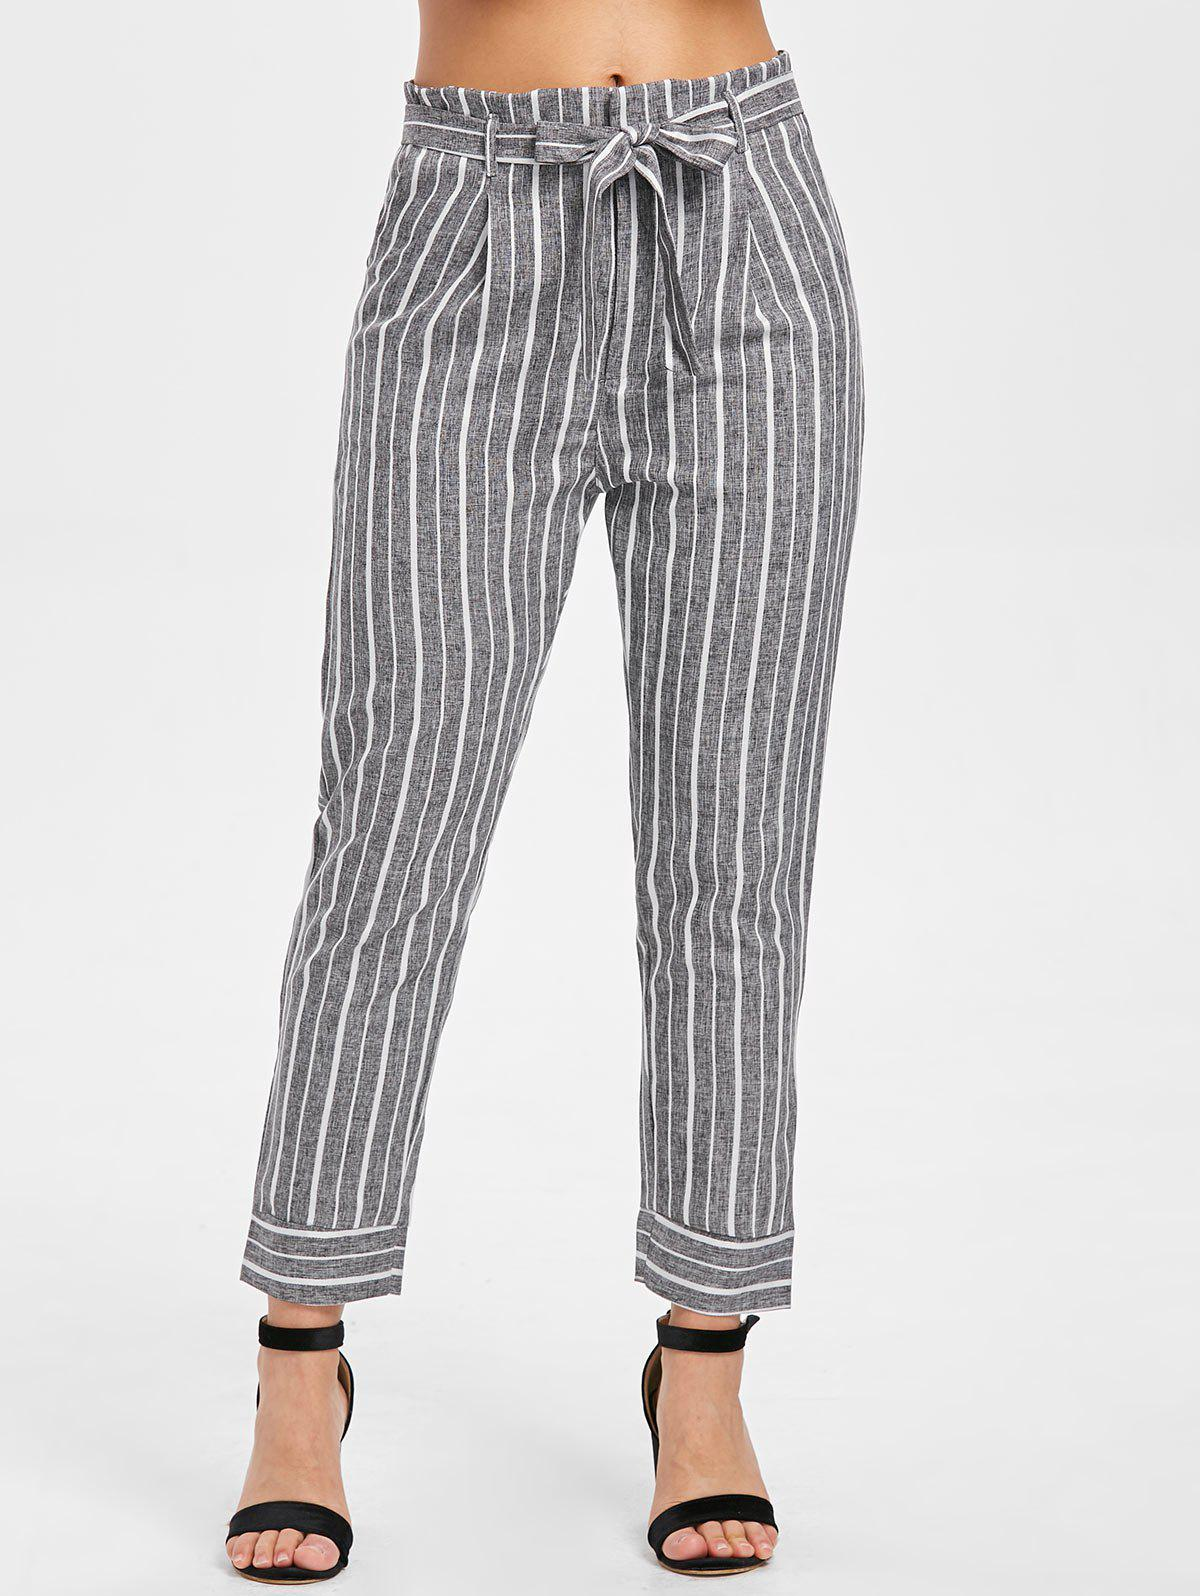 Striped Panel High Waist Pants with Belt - GRAY XL